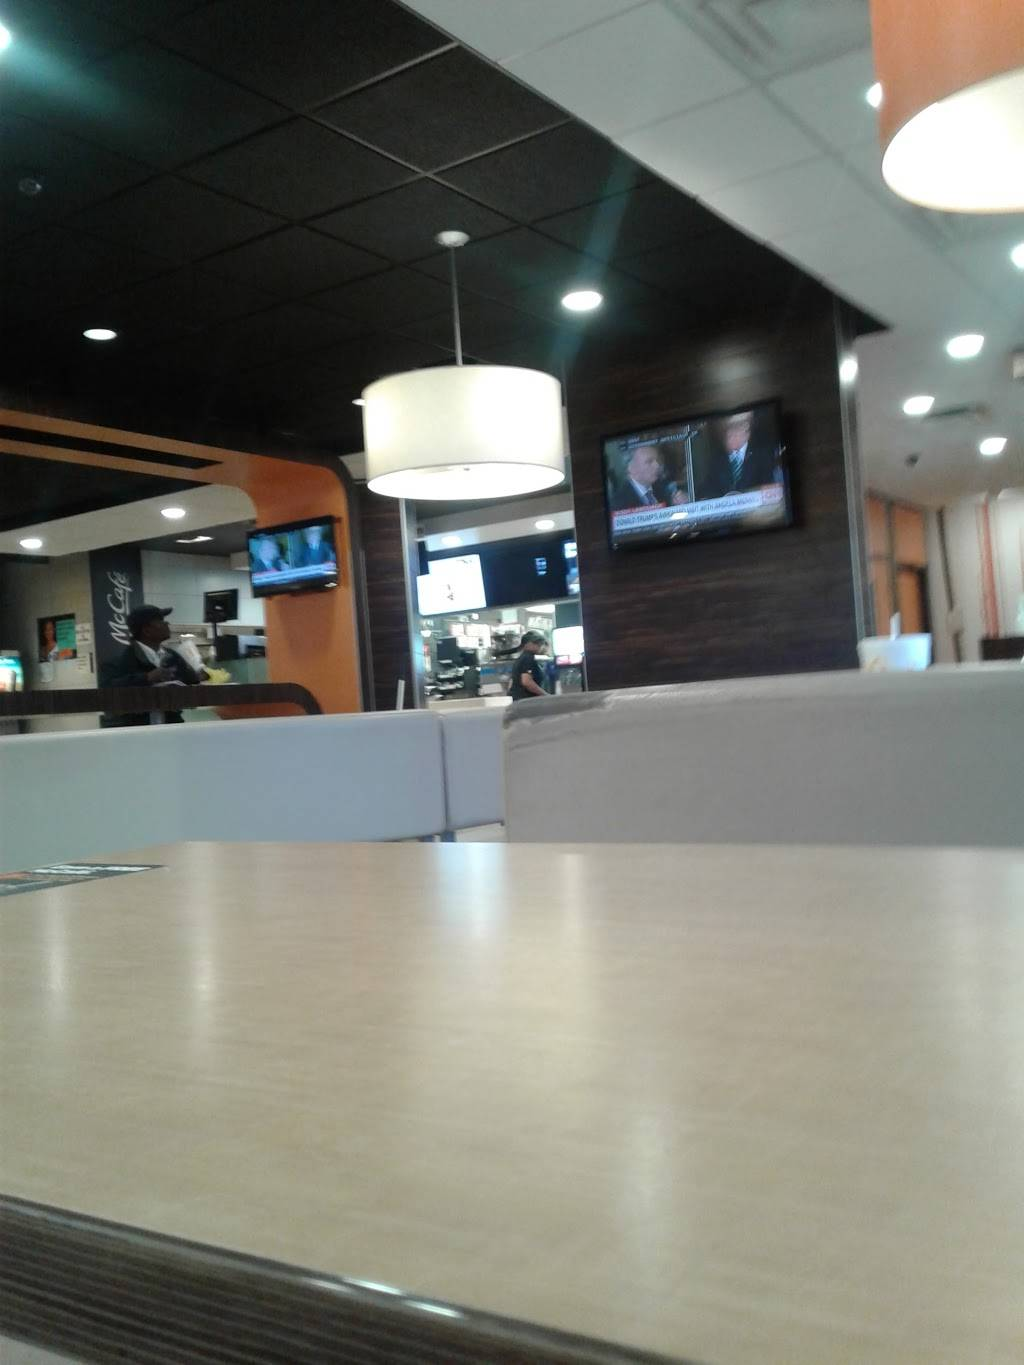 McDonalds - cafe  | Photo 9 of 10 | Address: 588 N 24th St, East St Louis, IL 62205, USA | Phone: (618) 874-6237